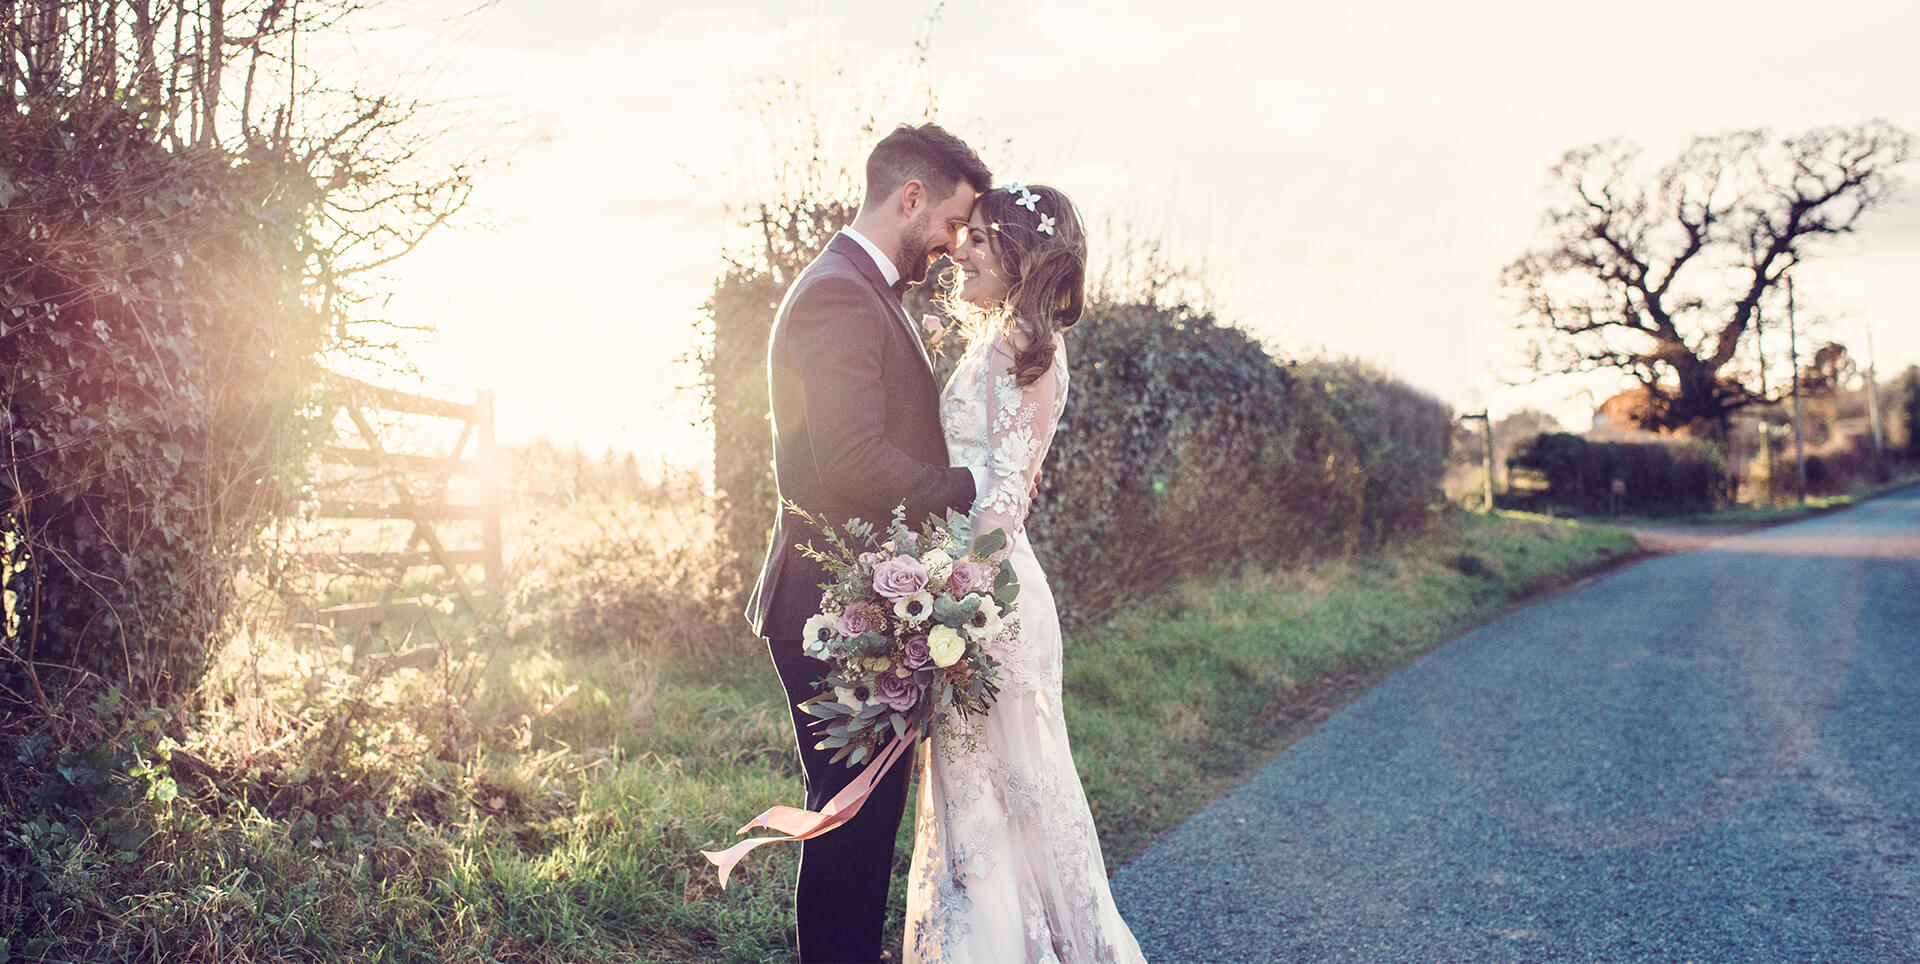 The bride and groom capture a moment together after saying I do at curradine barns in Worcestershire